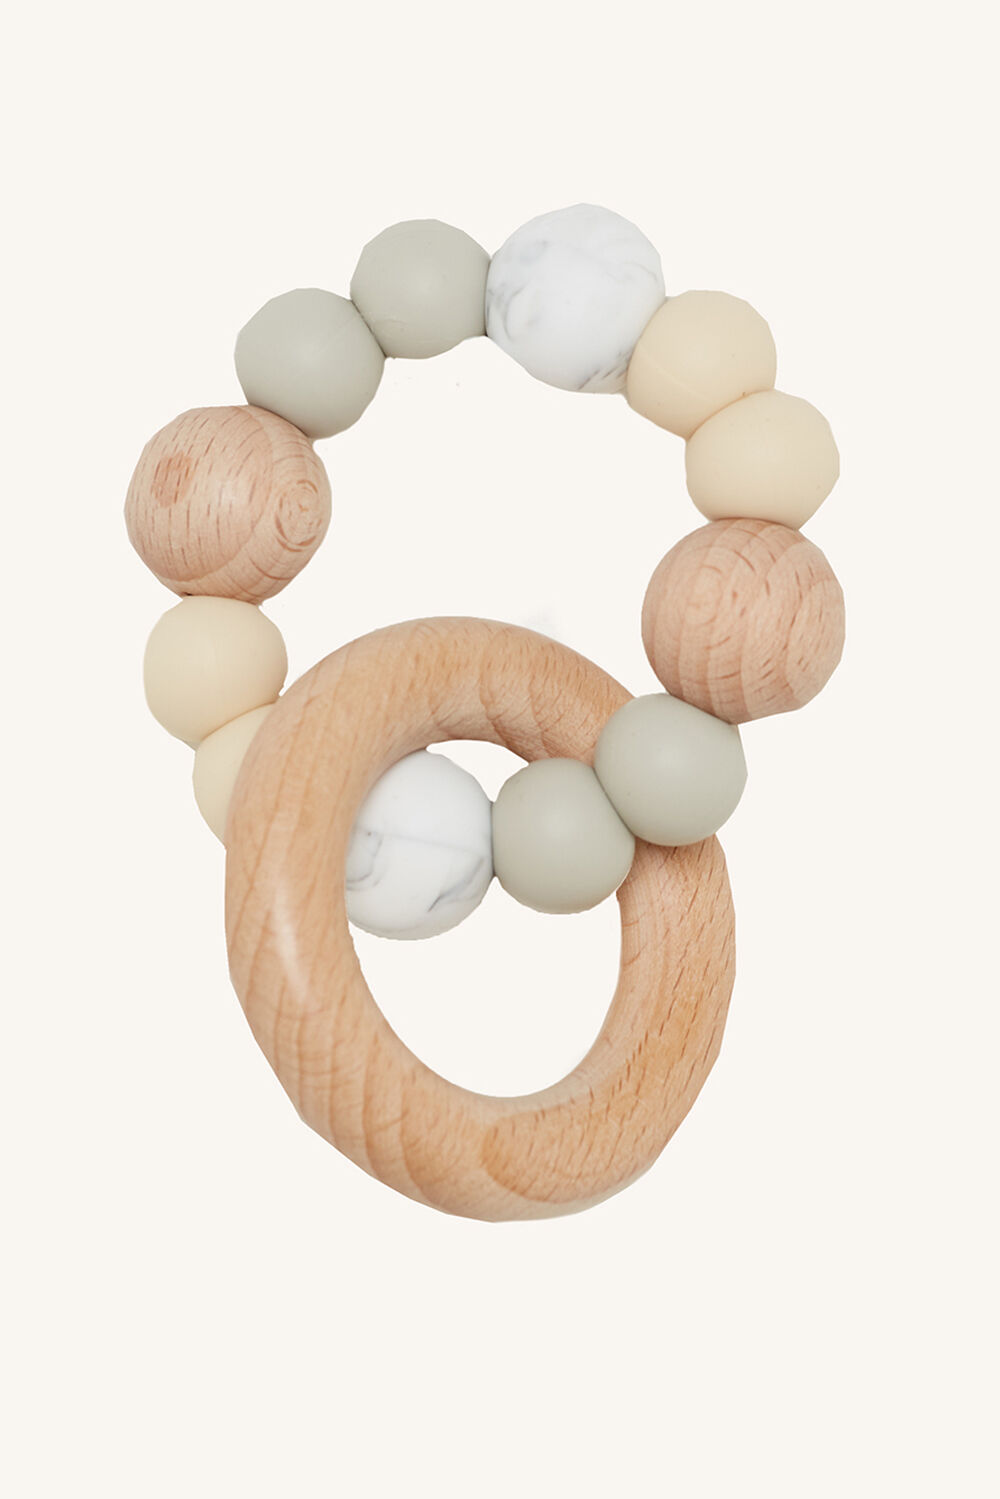 SINGLE RATTLE SILICONE & BEECH in colour LIGHT GRAY